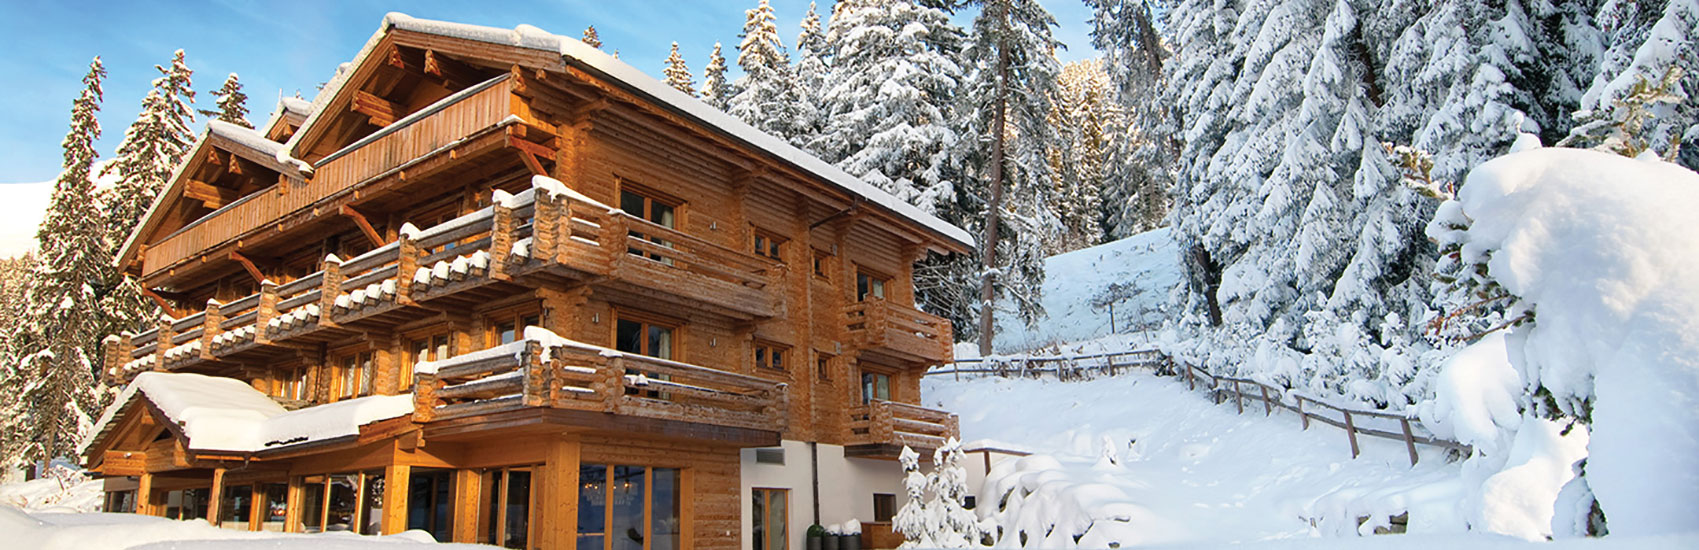 The Lodge Verbier 0